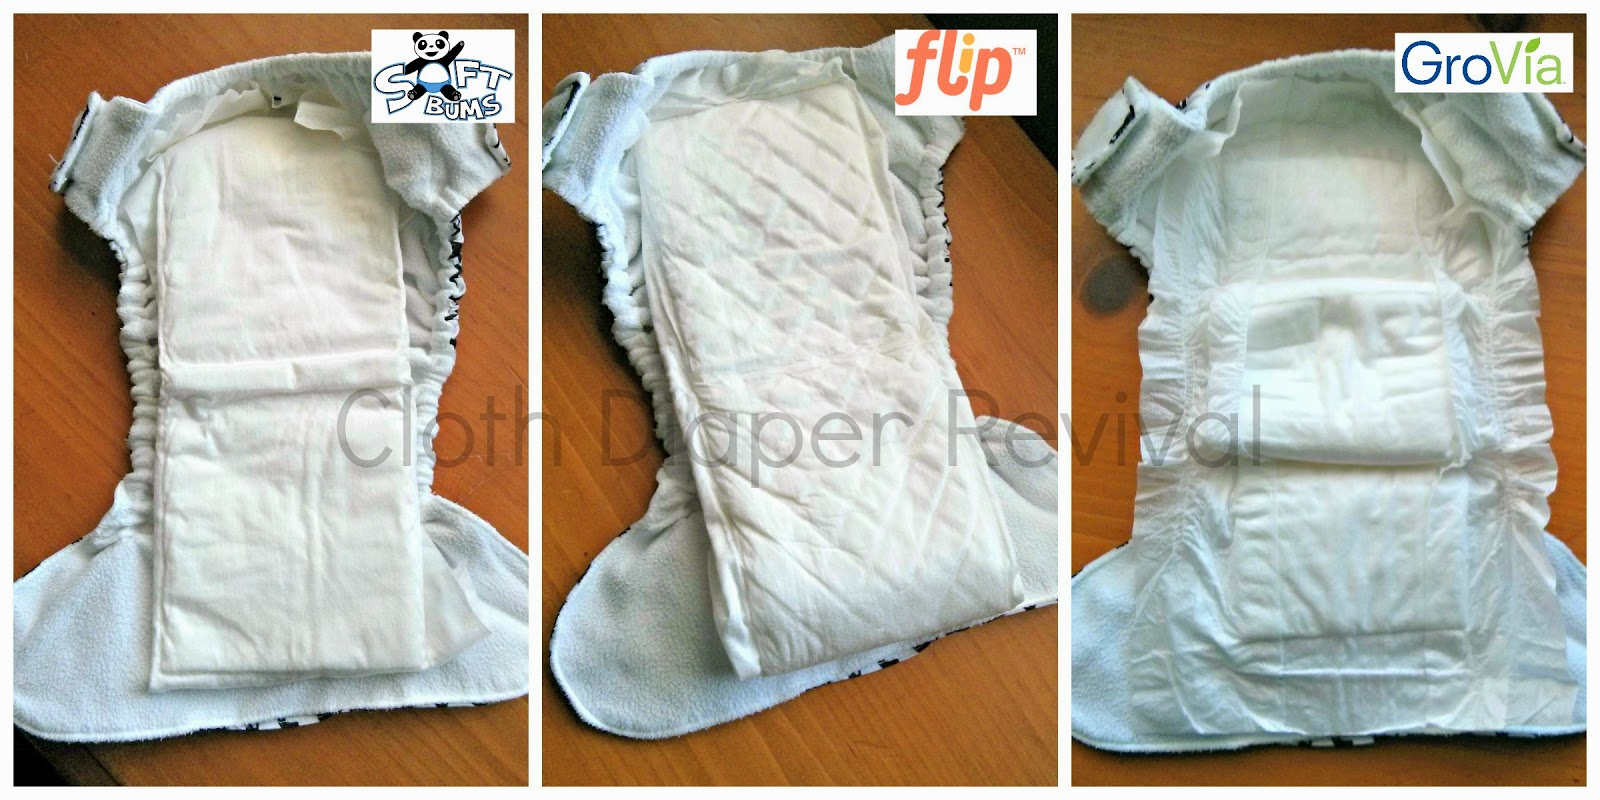 Hybrid cloth diapers